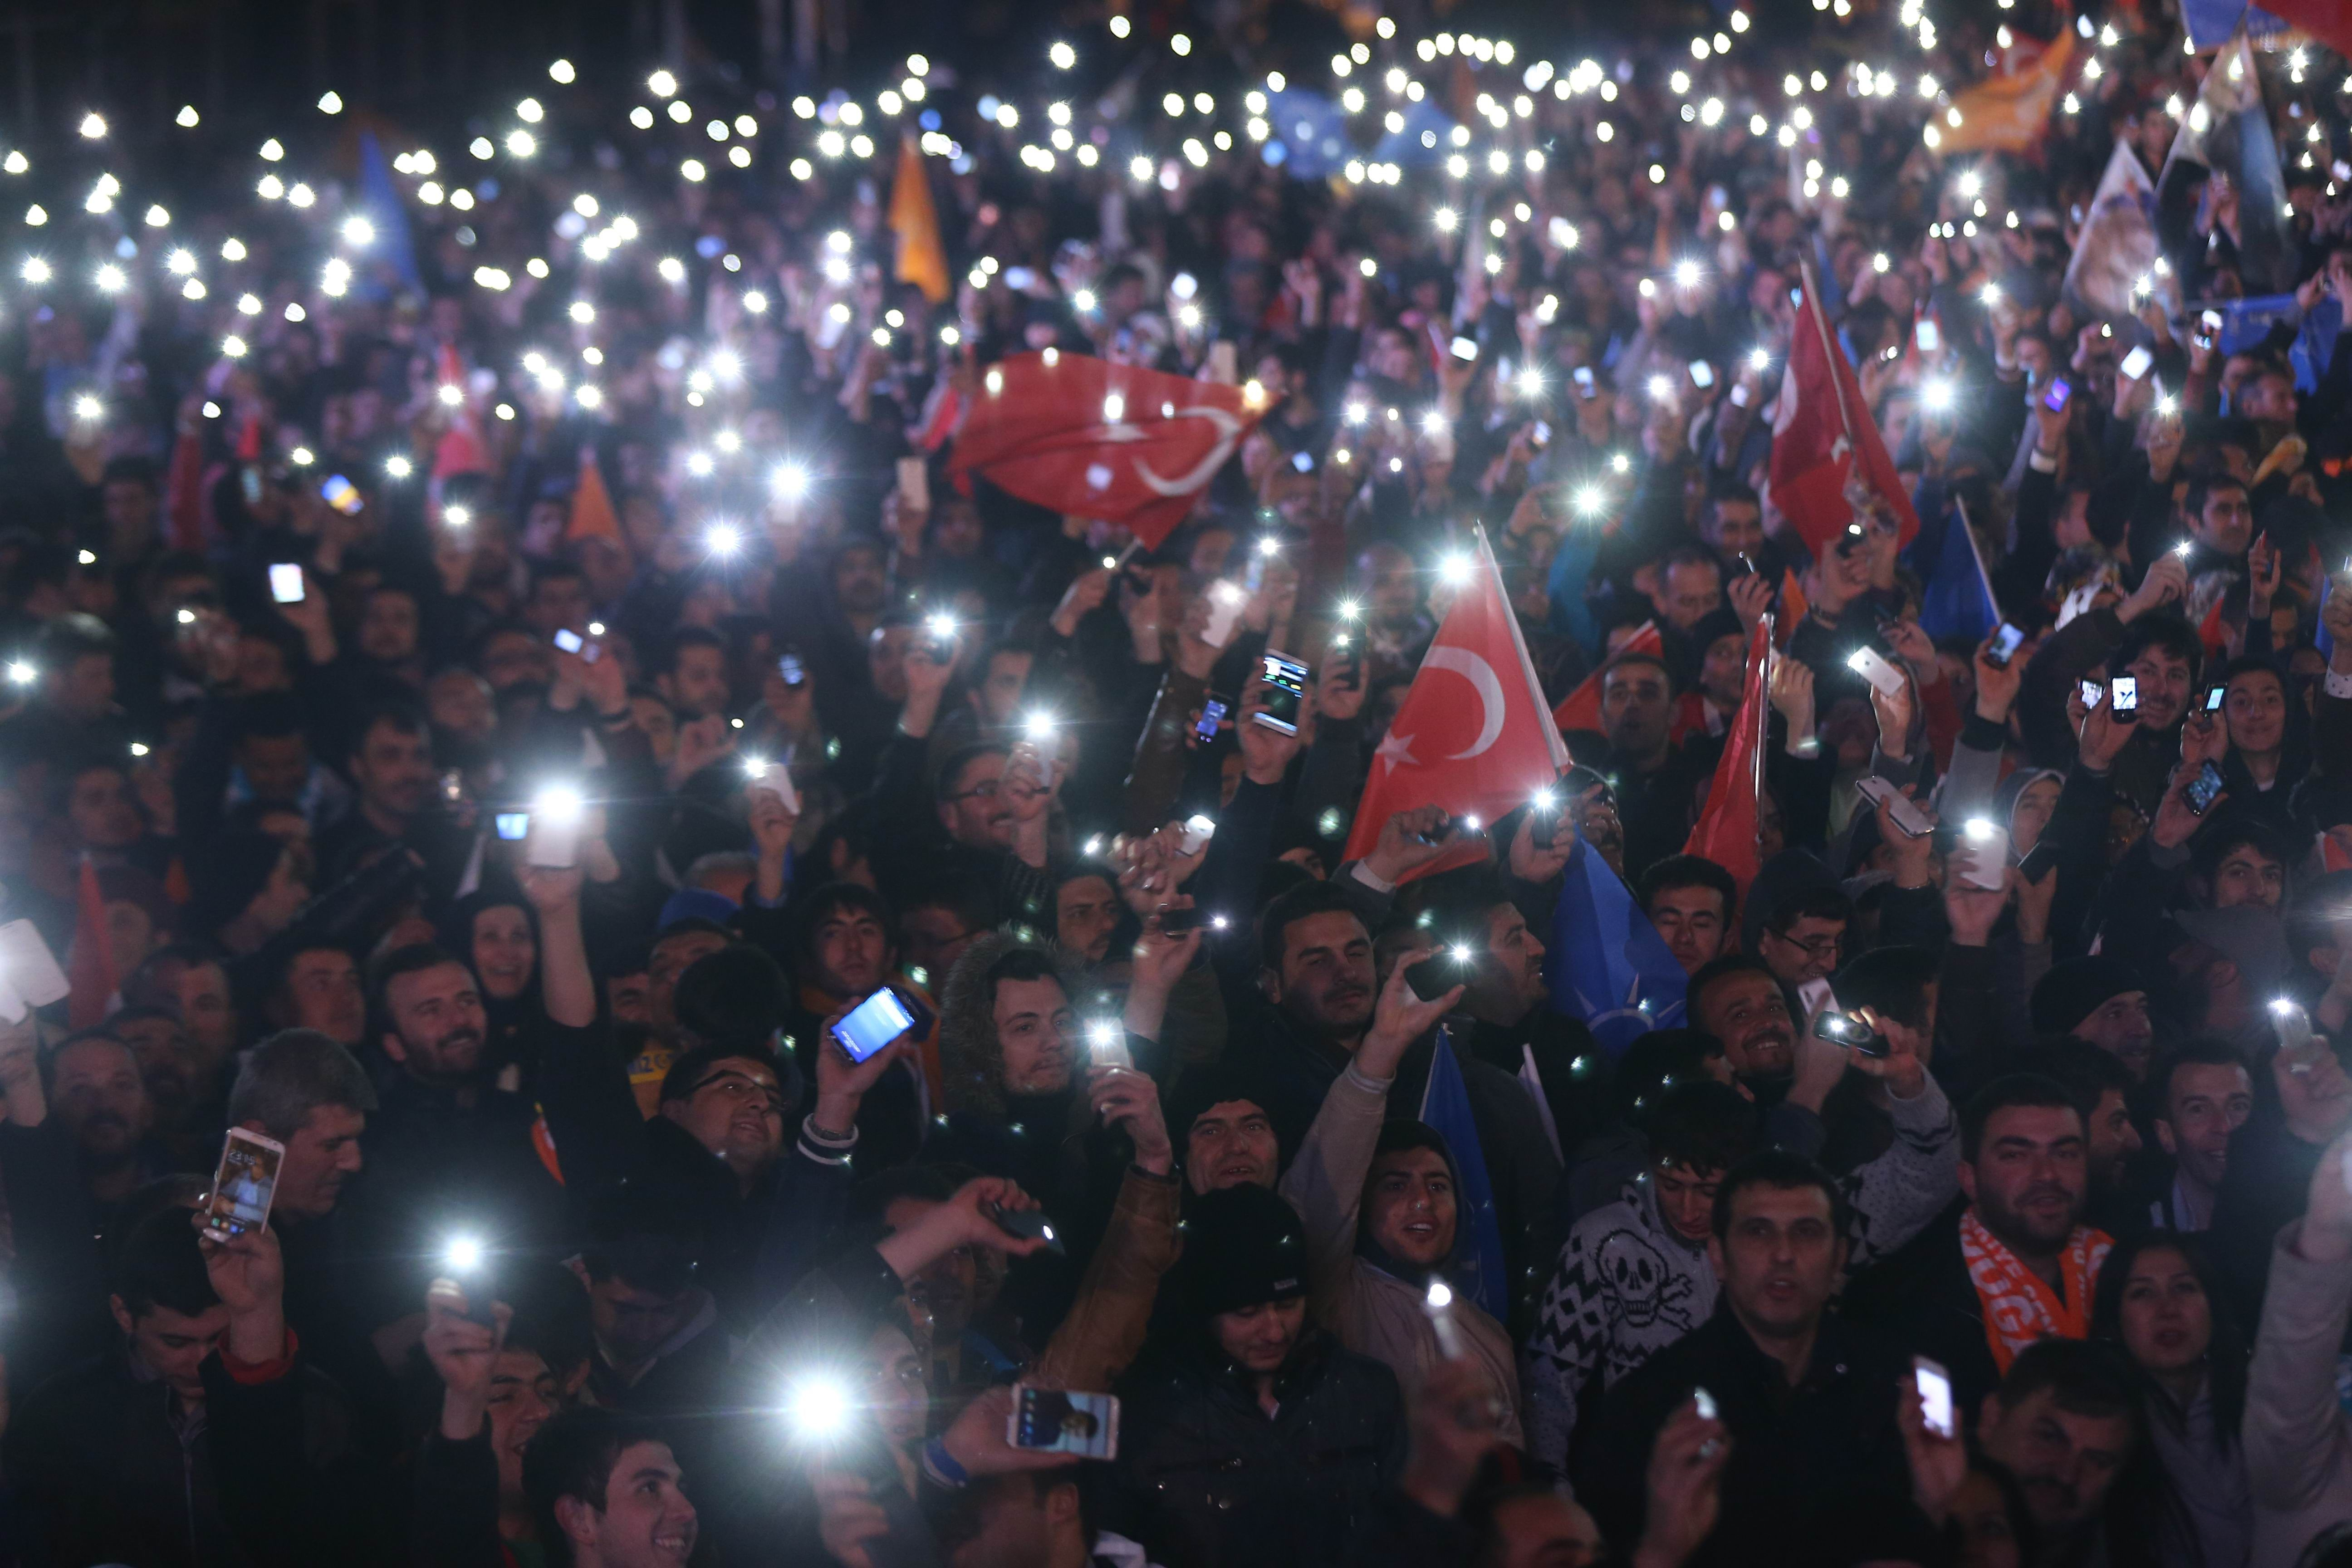 Supporters of Turkey's ruling AK party (AKP) cheer as they follow the election's results in front of the party's headquarters in Ankara, on March 30, 2014. The party of Turkish Premier Recep Tayyip Erdogan took a strong early lead in local elections, despite turbulent months marked by mass protests, corruption scandals and Internet blocks. A photo of Turkish Premier Recep Tayyip Erdogan is seen on the flag at right.      (AFP PHOTO / ADEM ALTAN)